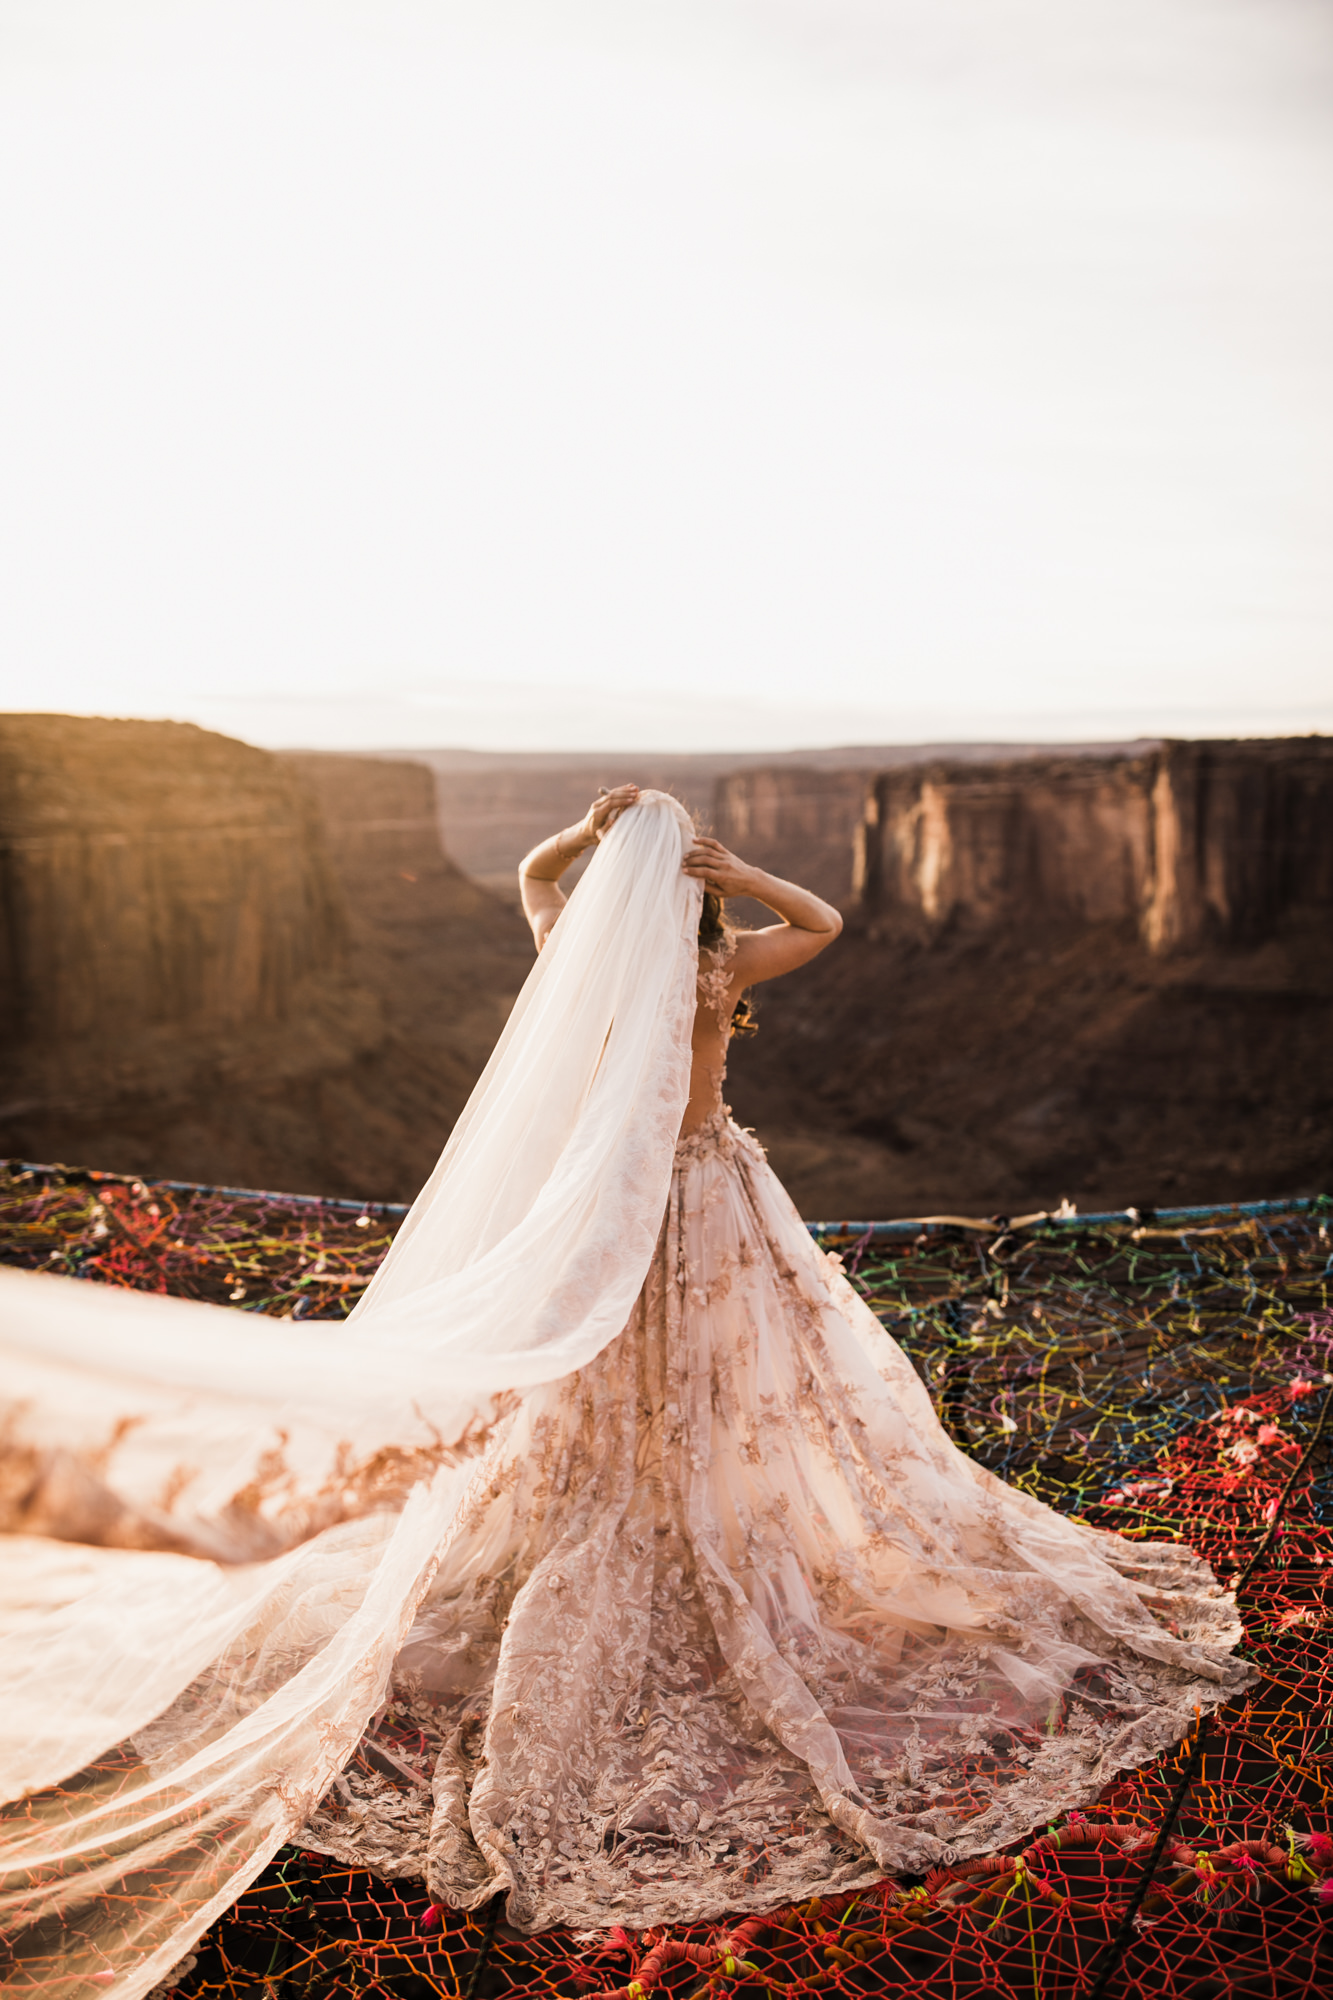 galia lahav bride on a moab spacenet over a canyon